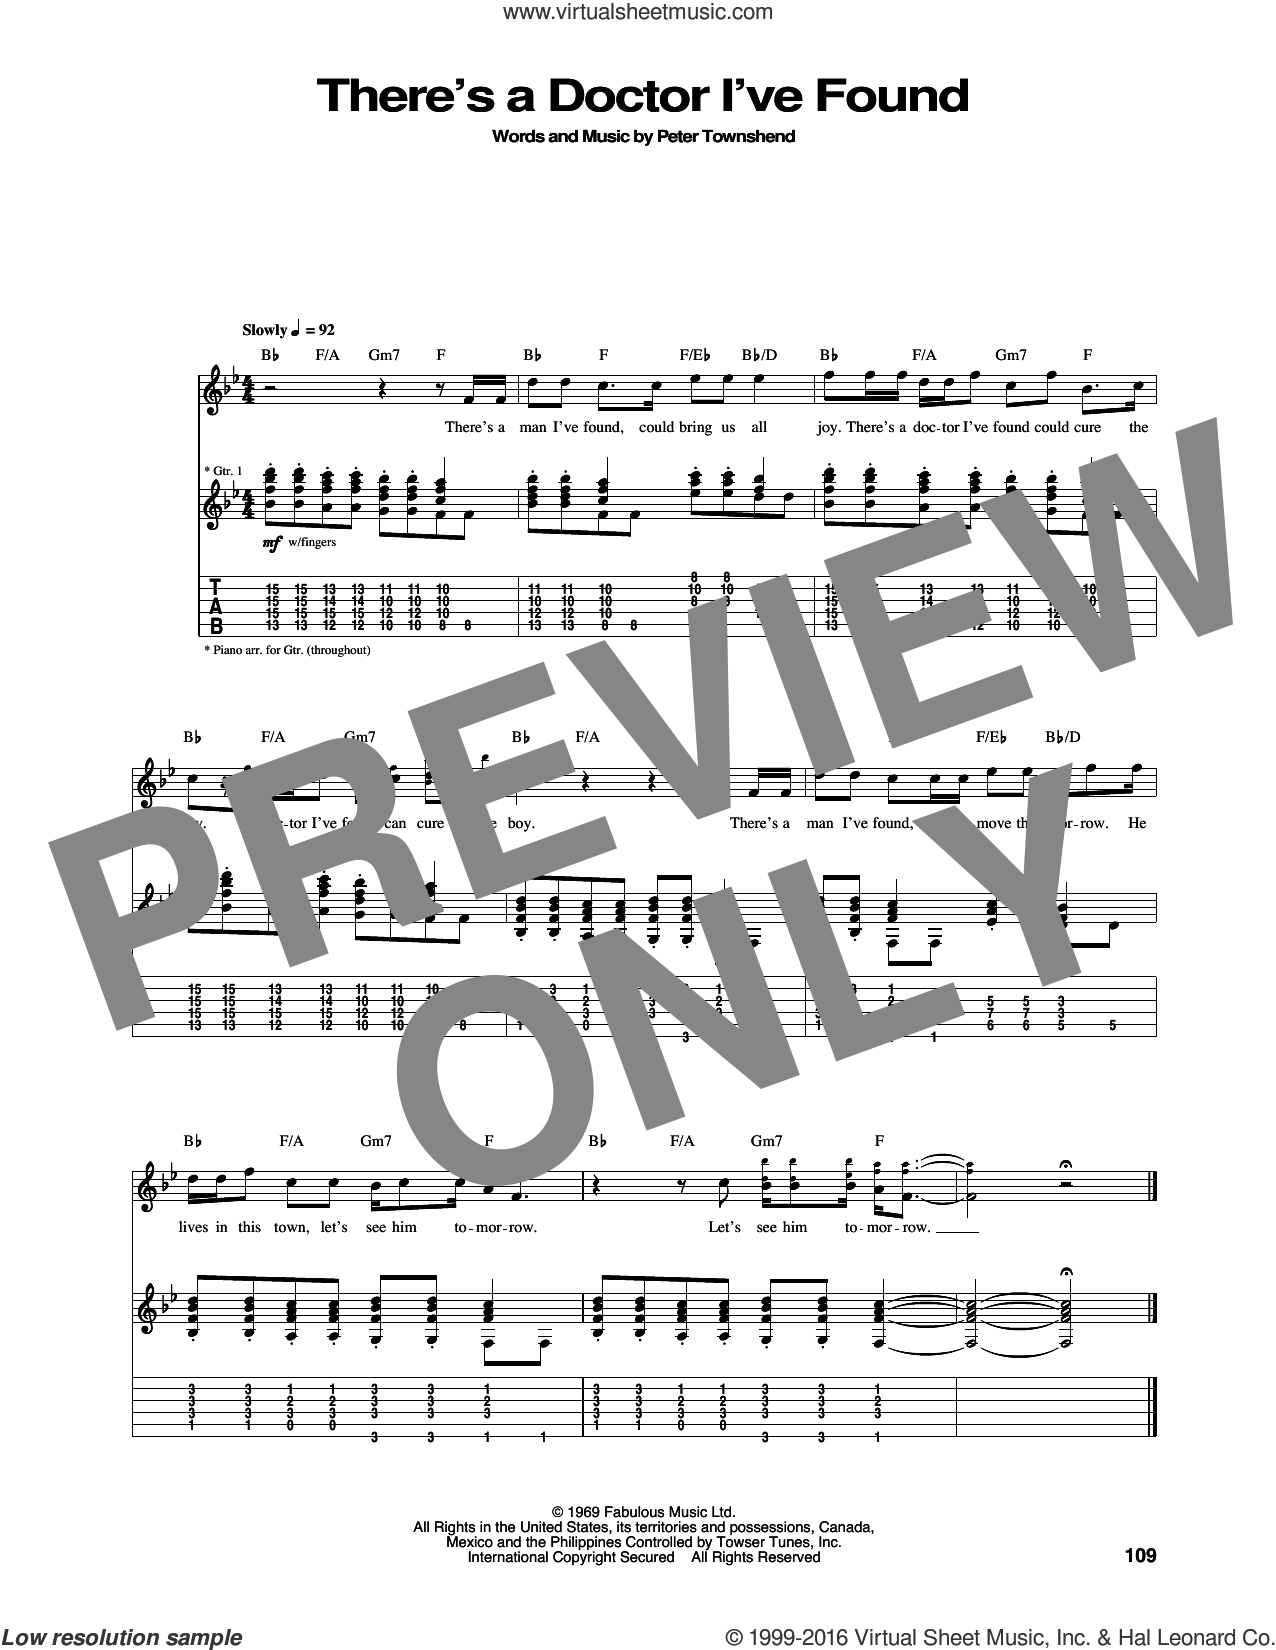 There's A Doctor I've Found sheet music for guitar (tablature) by Pete Townshend